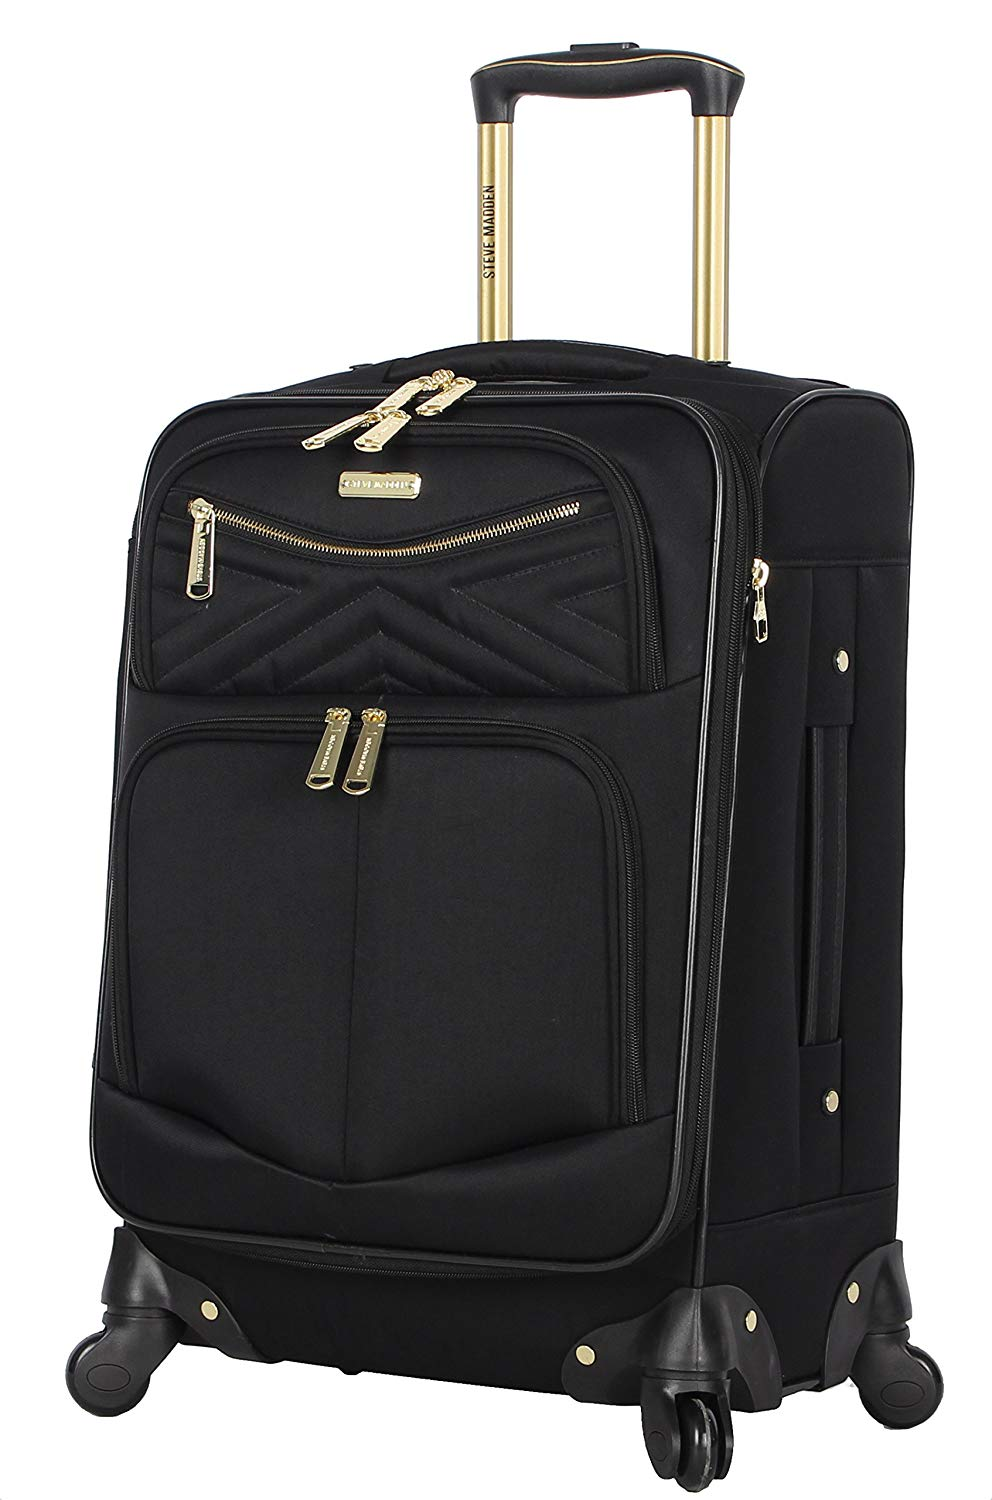 Steve Madden Softside Expandable Carry On, 20-Inch